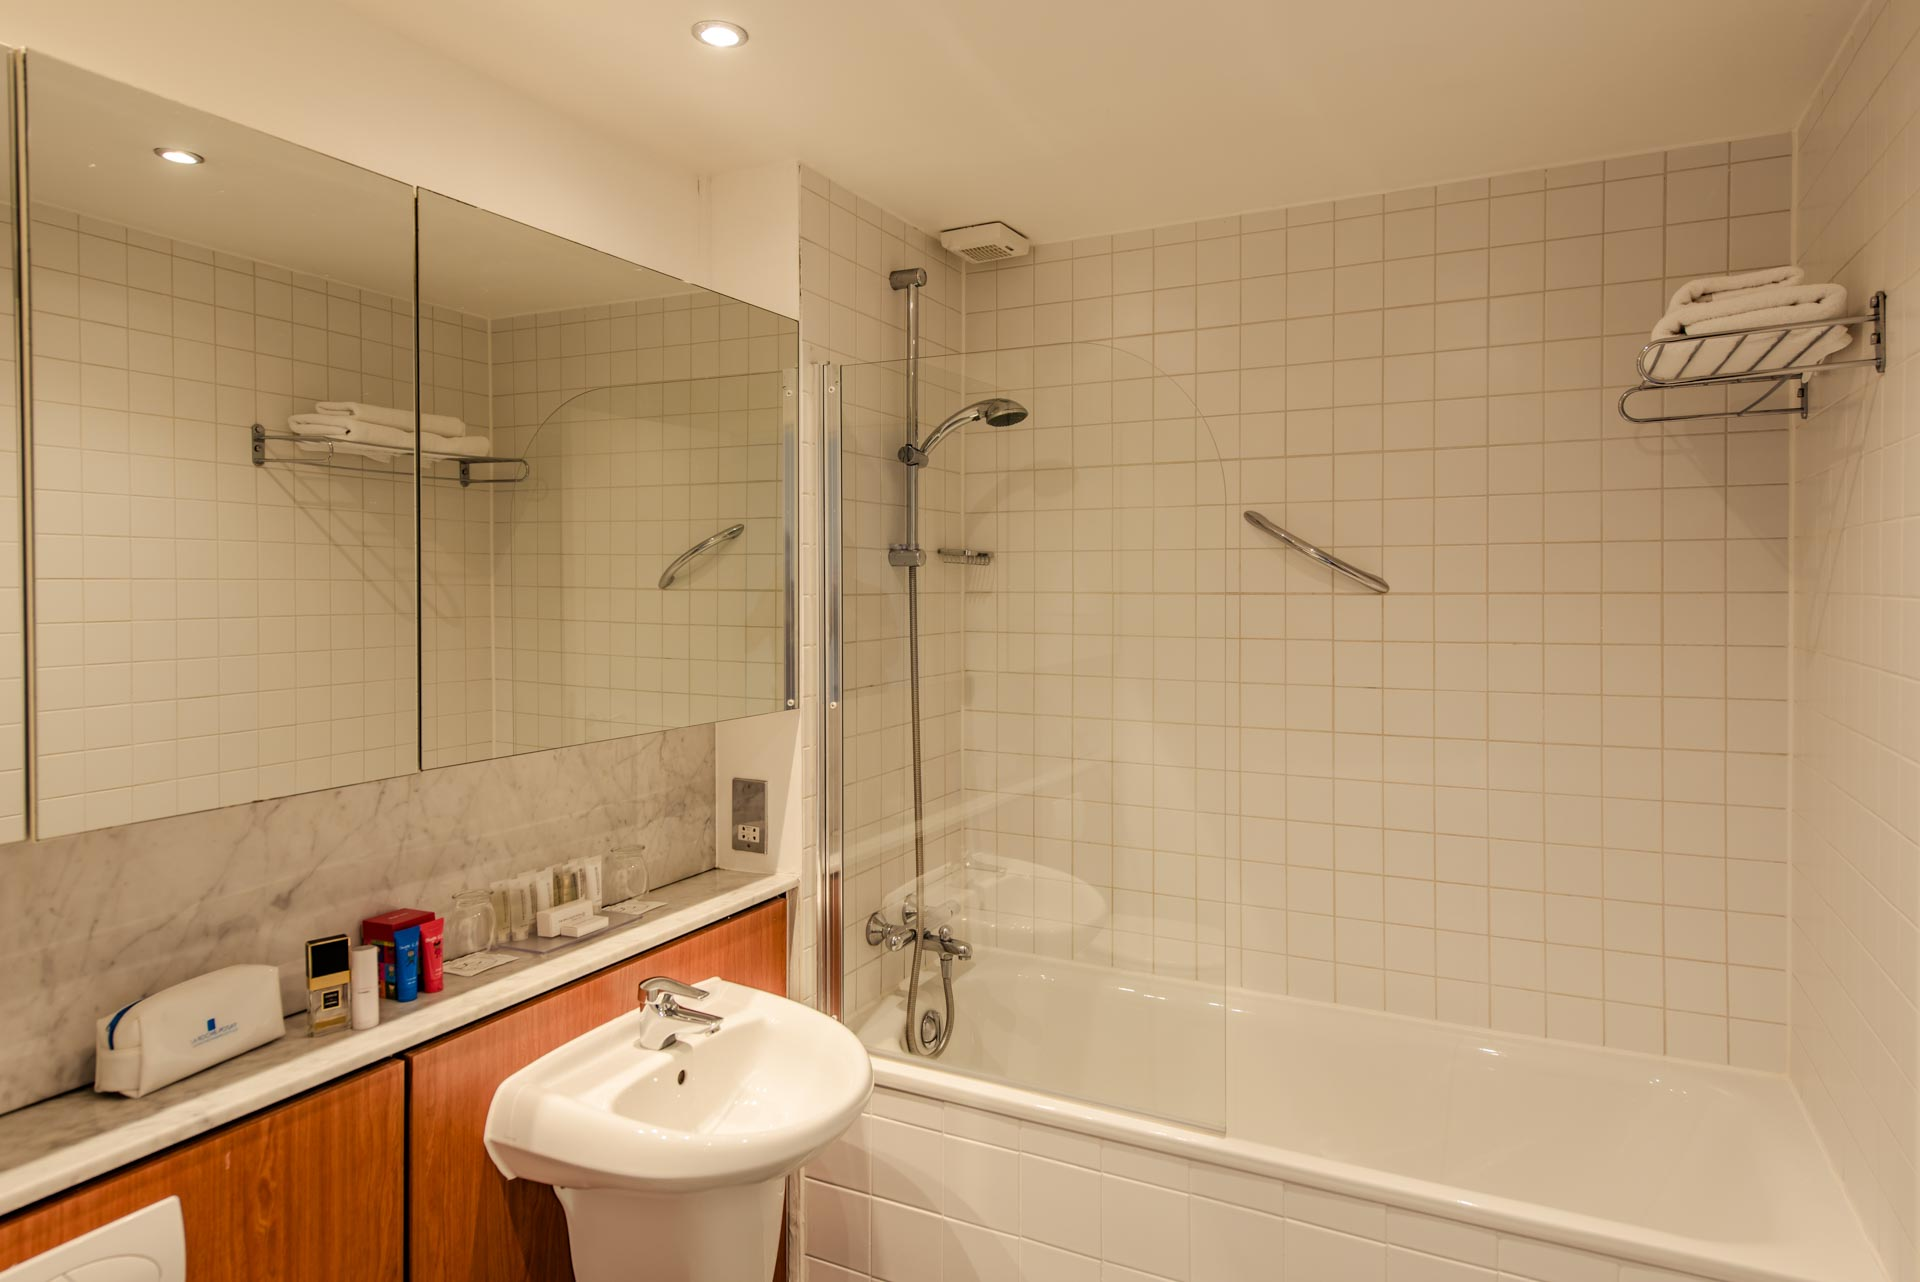 Bathroom at Premier Suites Dublin Sandyford, Sandyford, Dublin